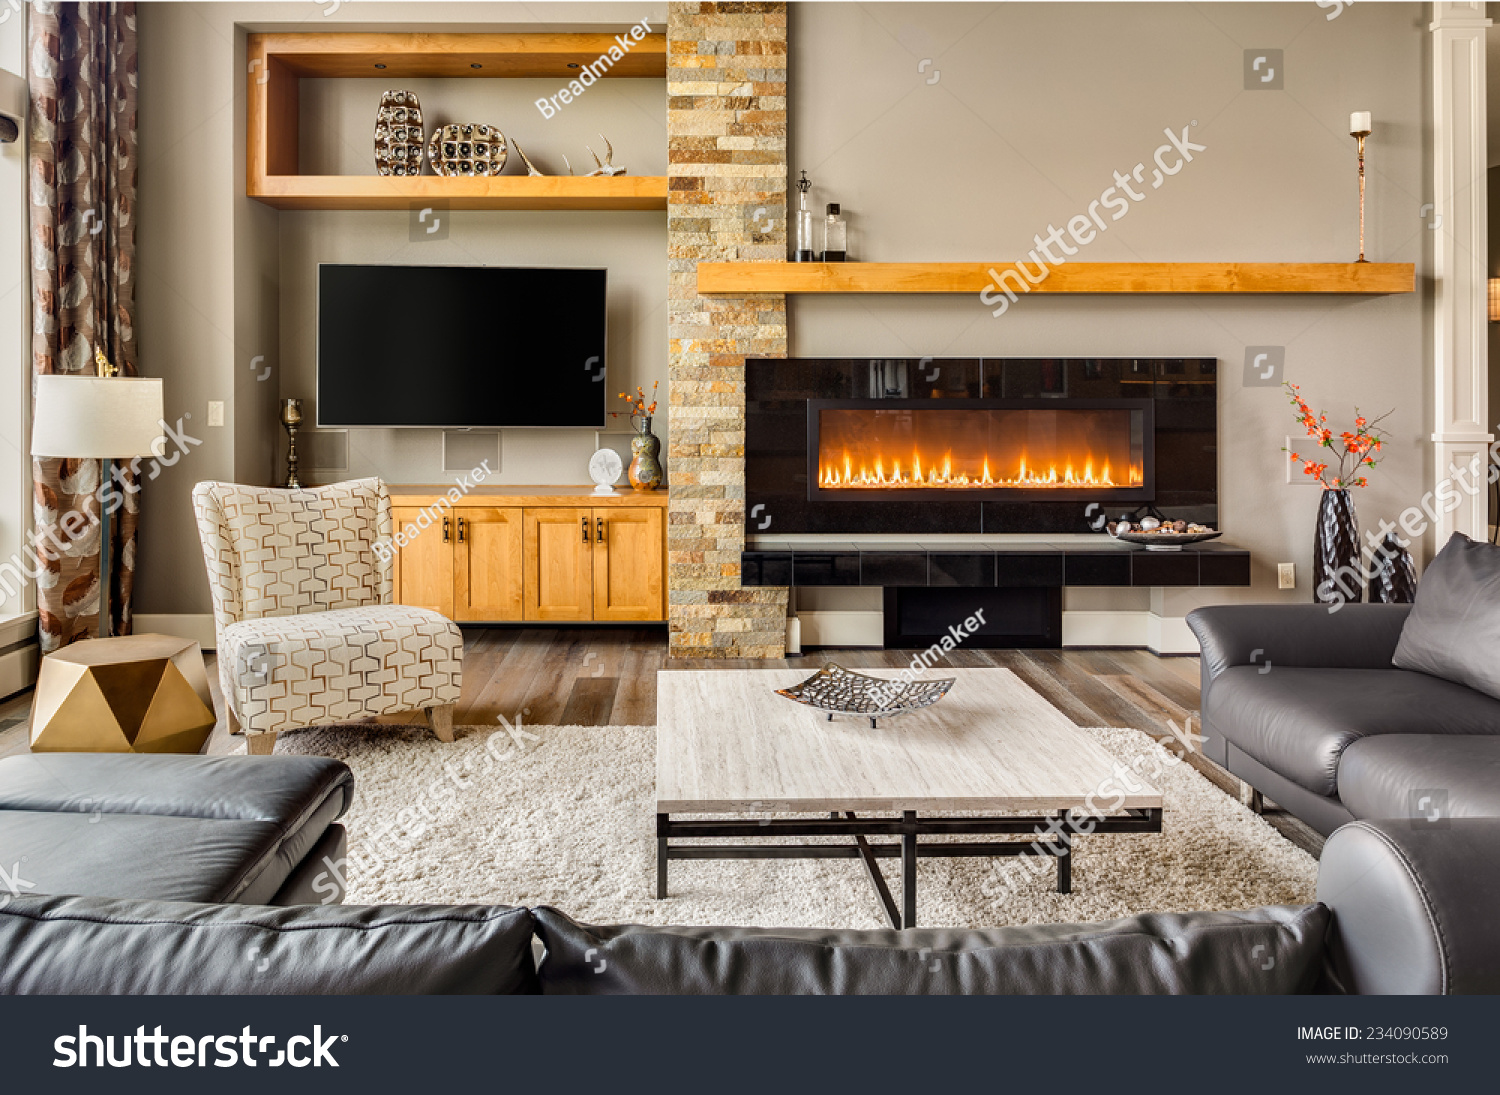 Furnished living room luxury home roaring stock photo for Furnished room